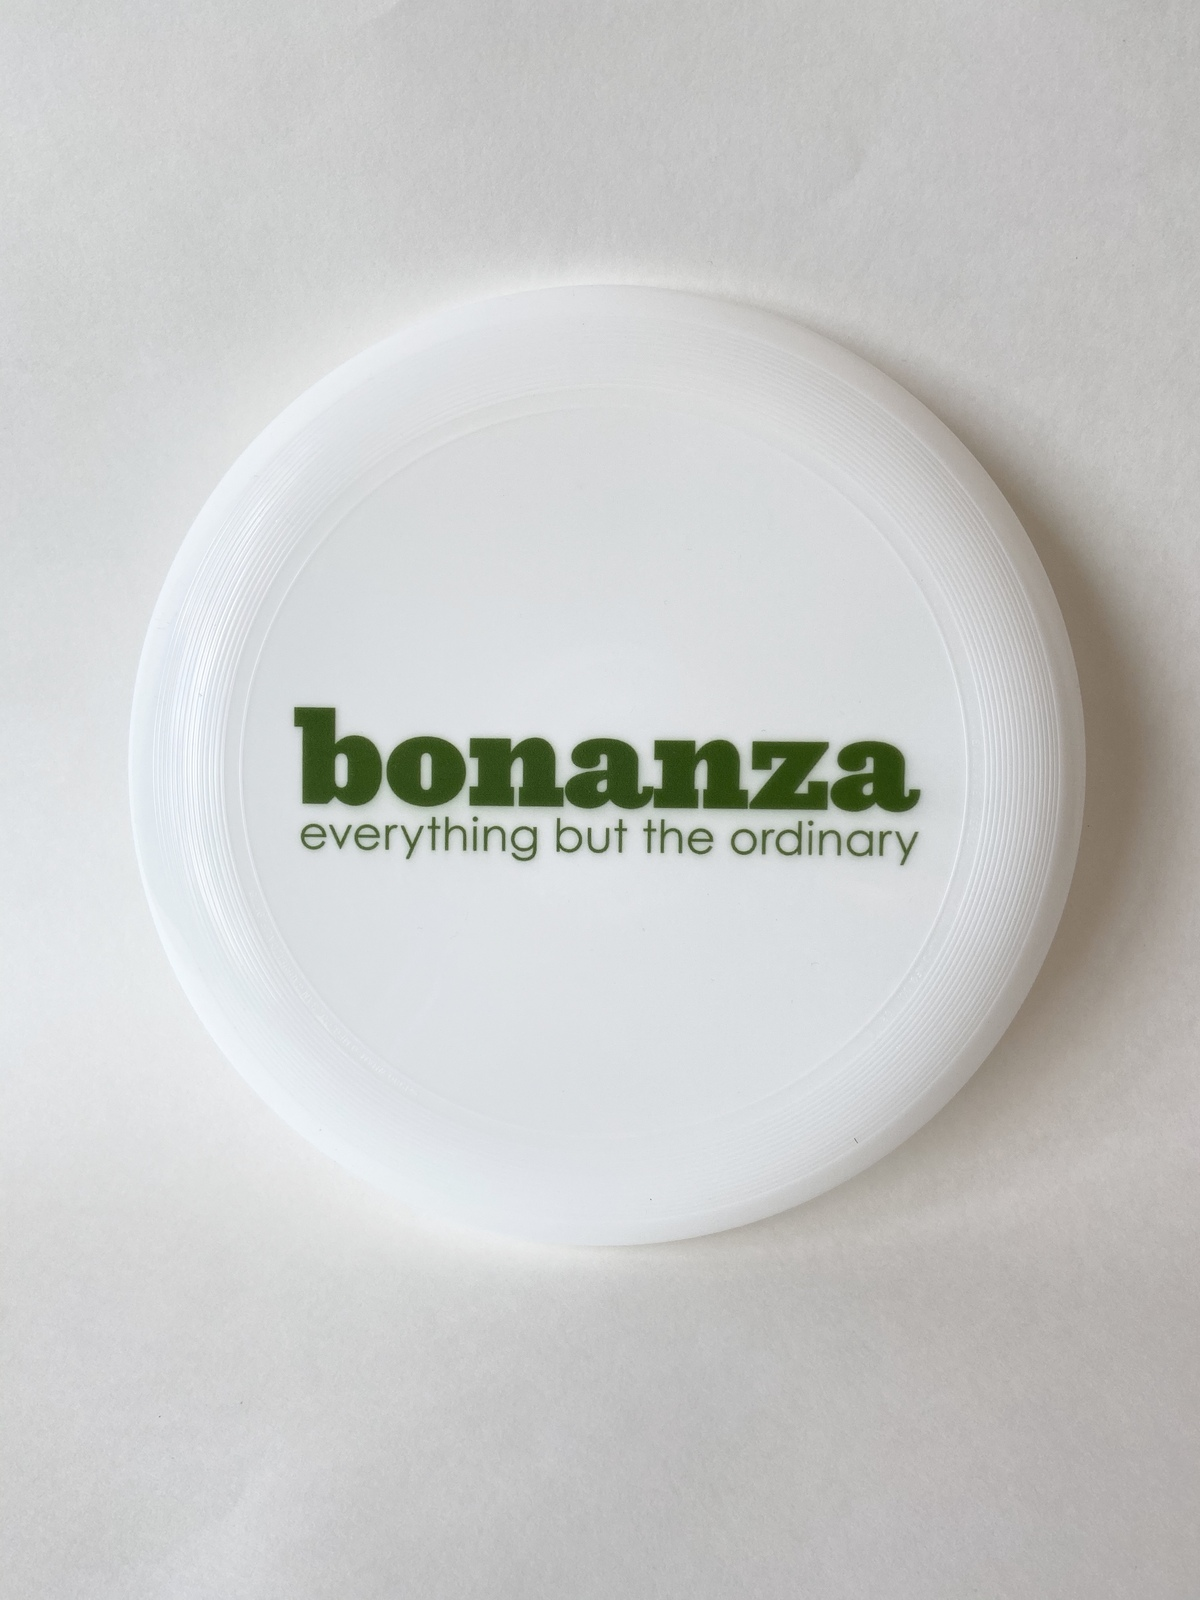 "Primary image for ""Everything But The Ordinary"" Bonanza Frisbee"